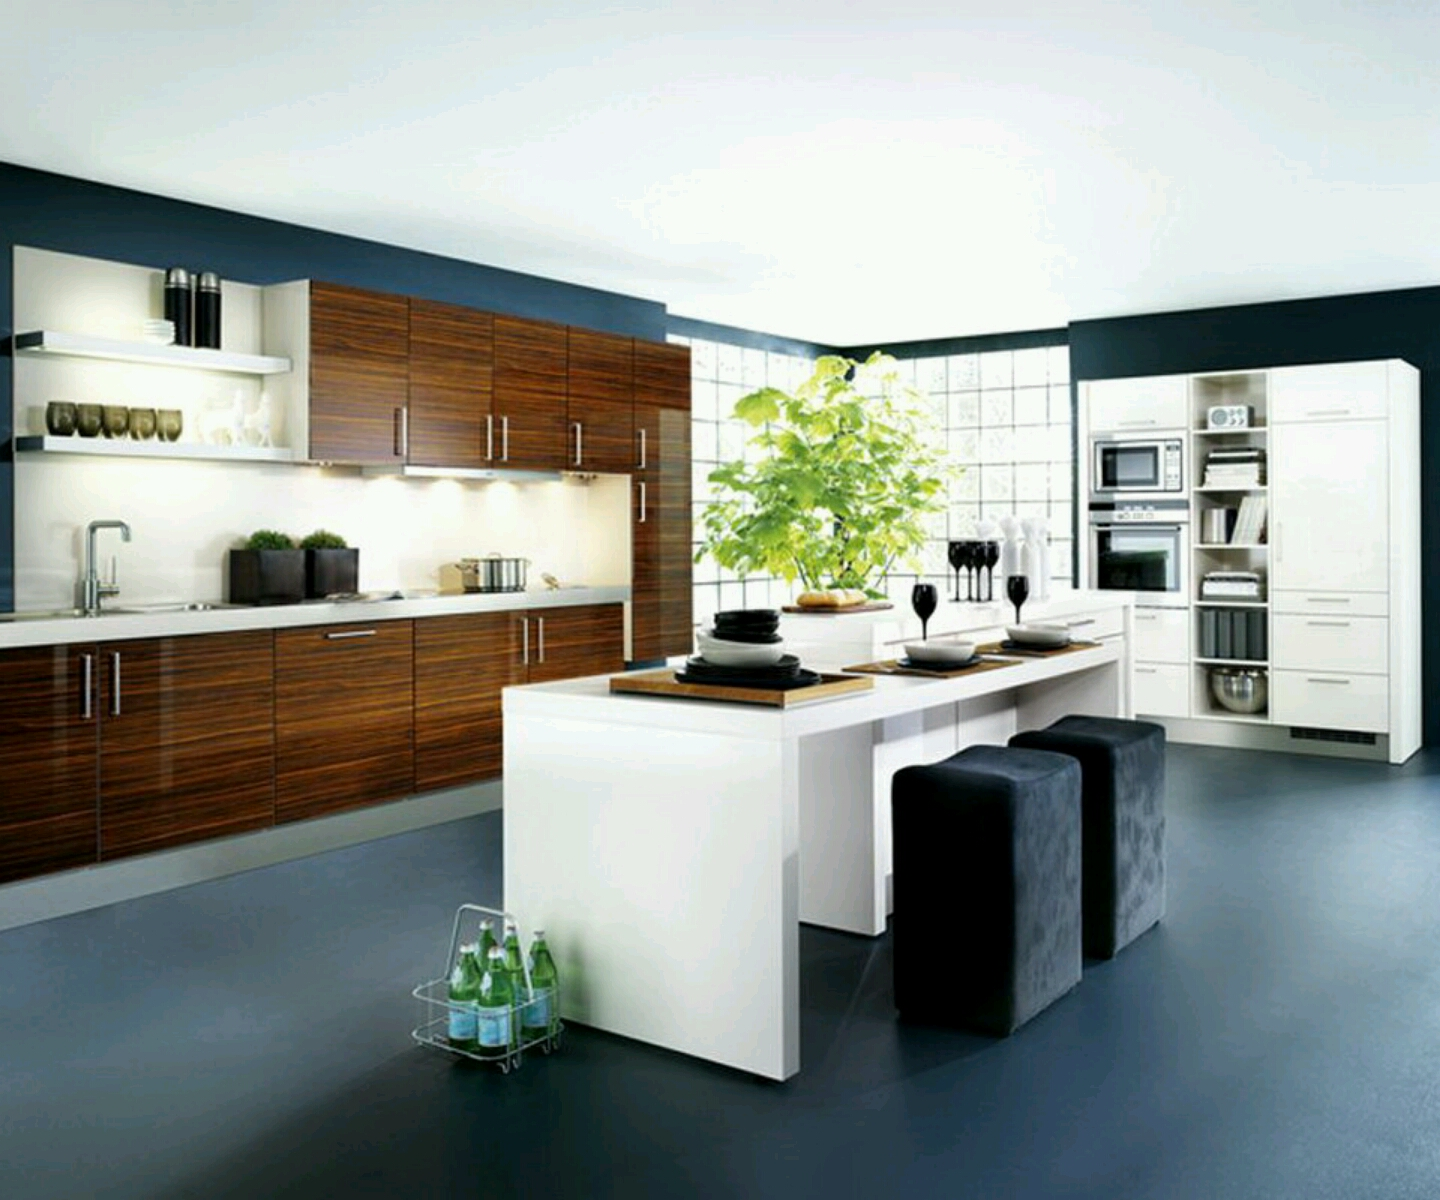 New home designs latest kitchen cabinets designs modern Modern kitchen design ideas